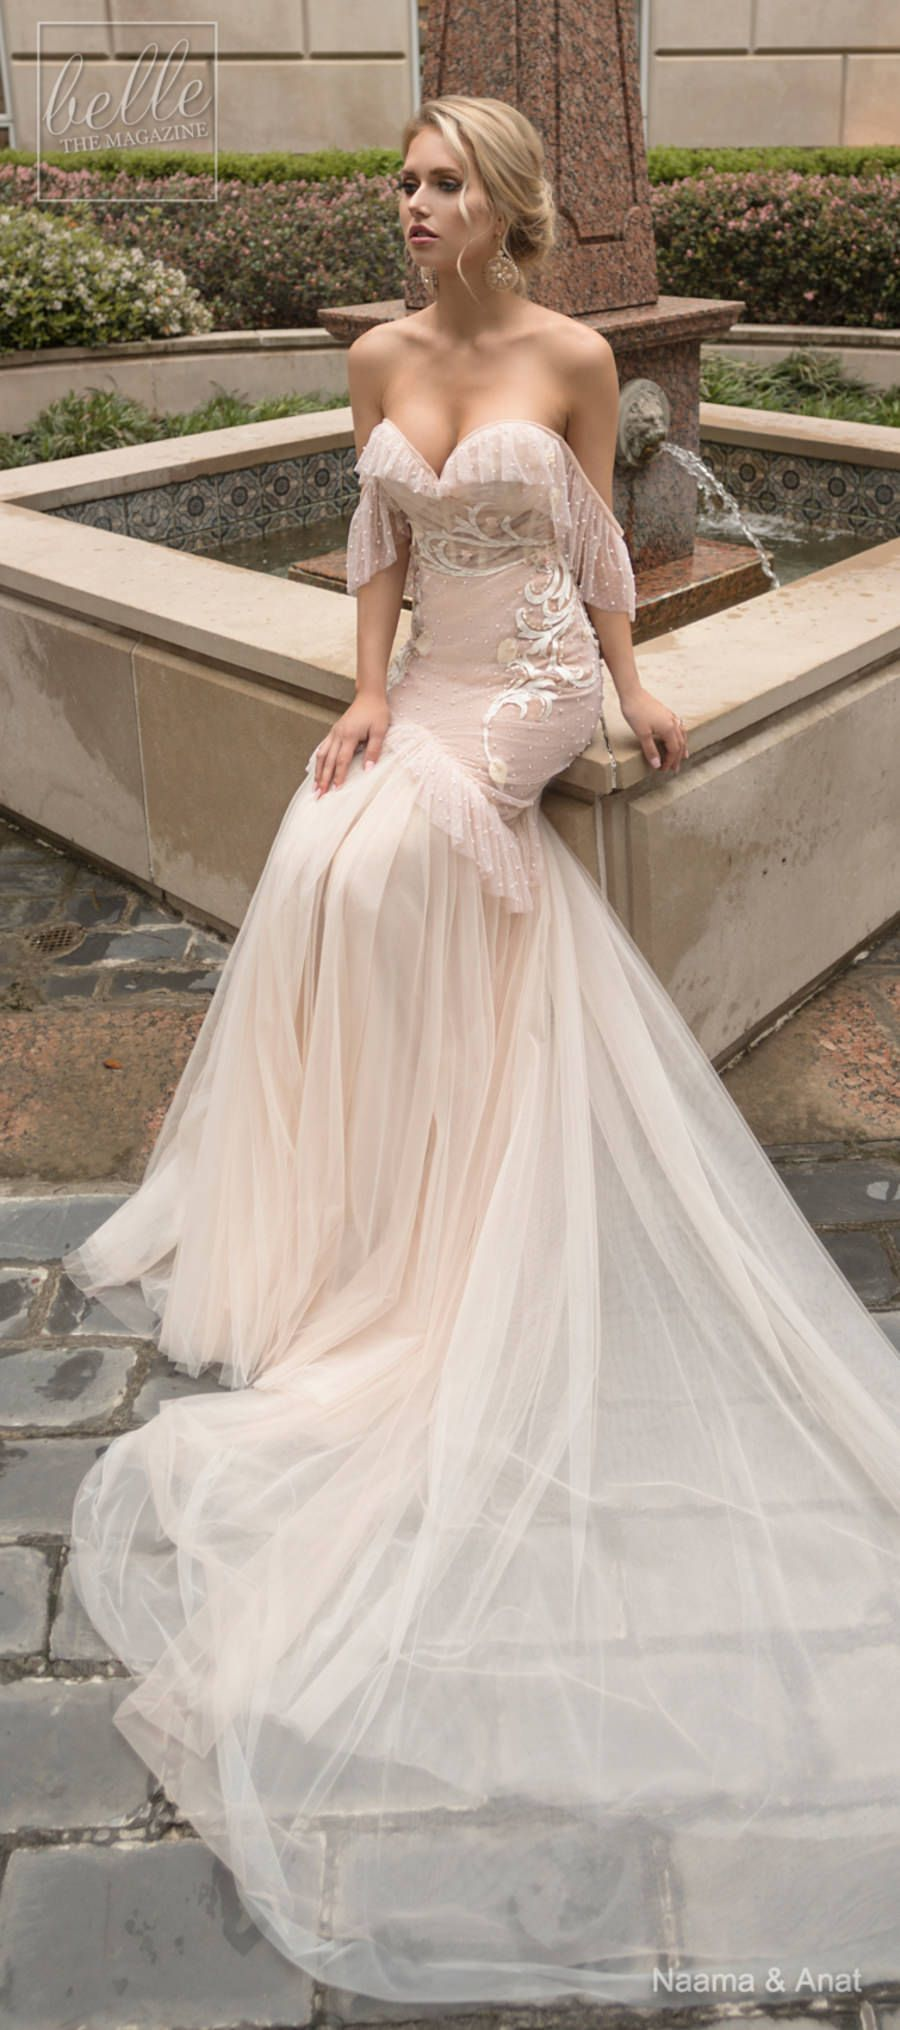 f6683d382c Naama and Anat Wedding Dress Collection 2019 - Dancing Up the Aisle -  FLAMENCO